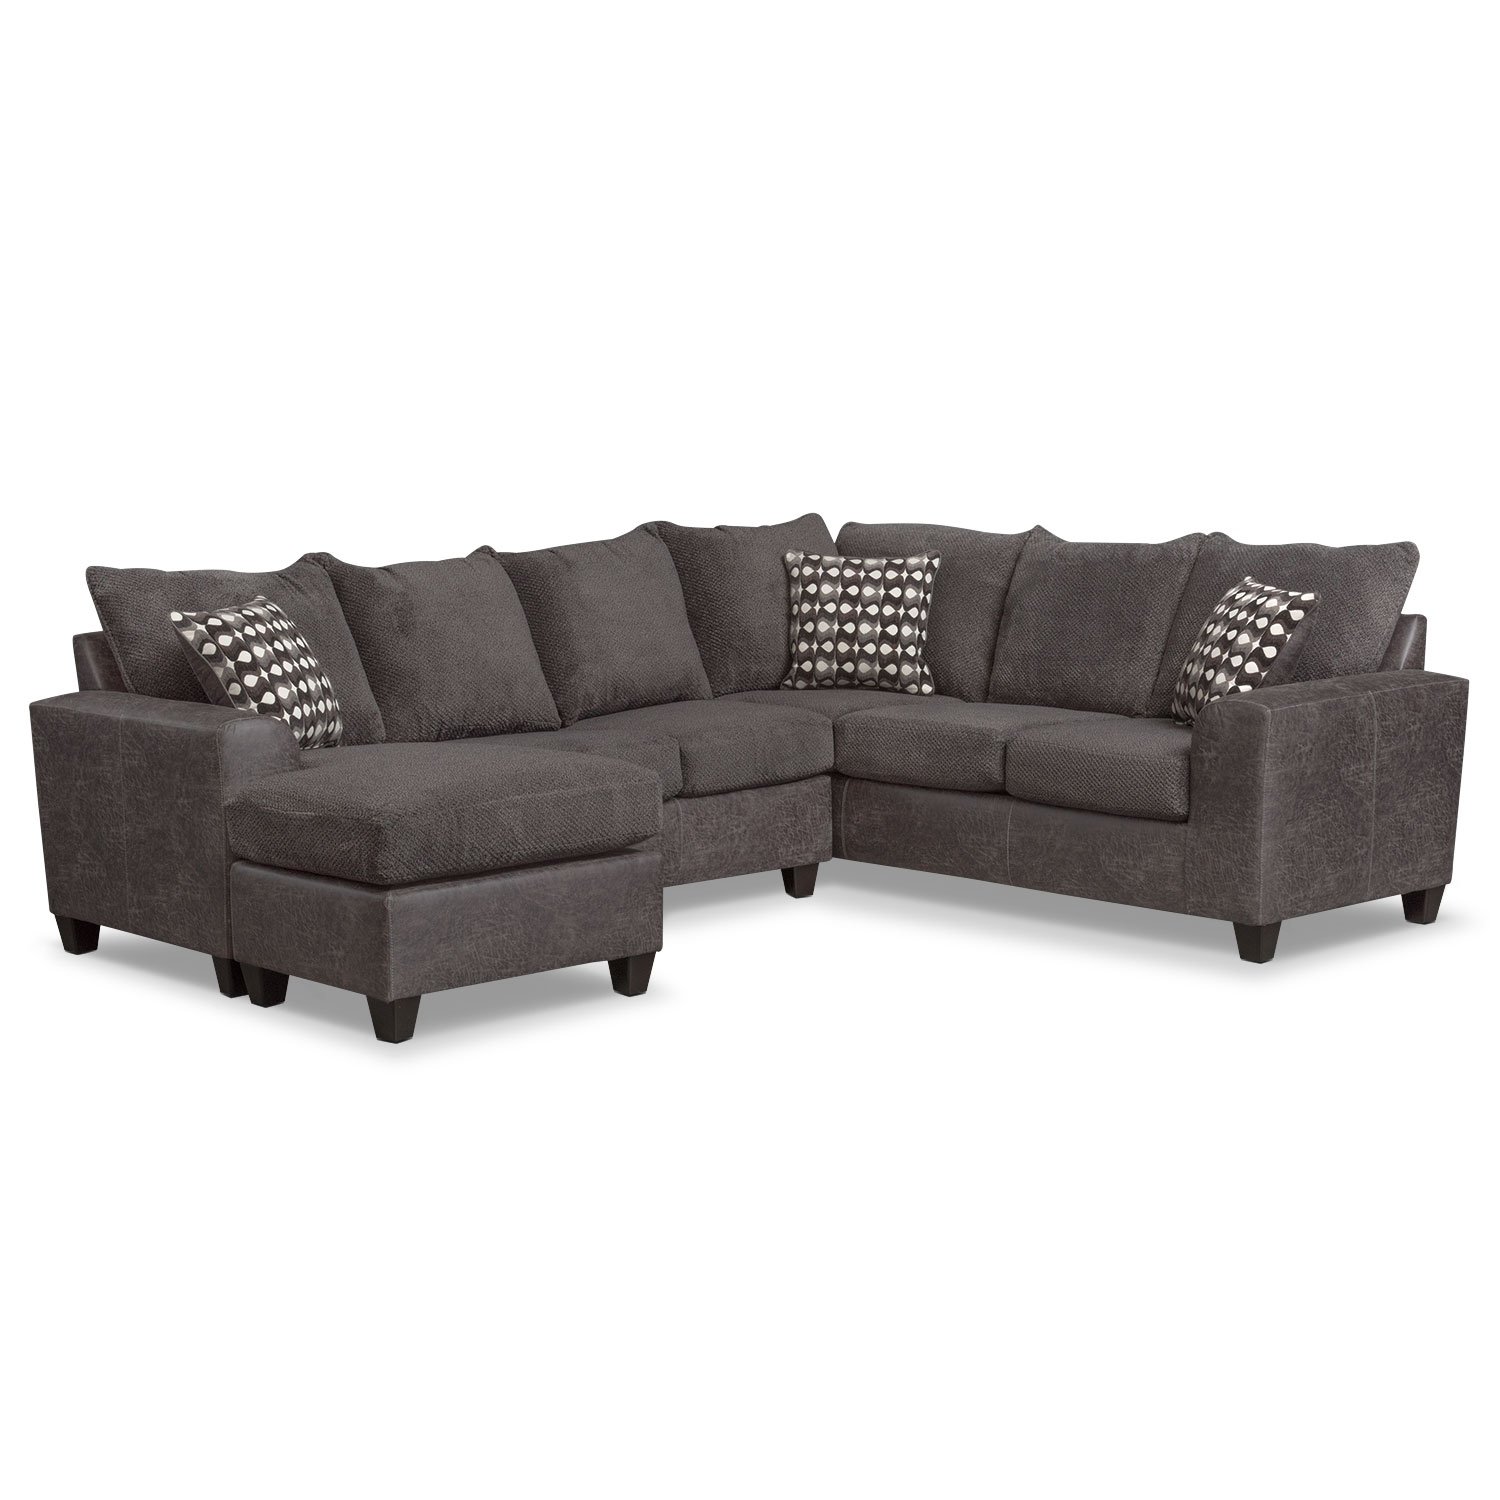 Brando 3 Piece Sectional With Modular Chaise – Smoke | Value City Inside Value City Sectional Sofas (Image 1 of 10)